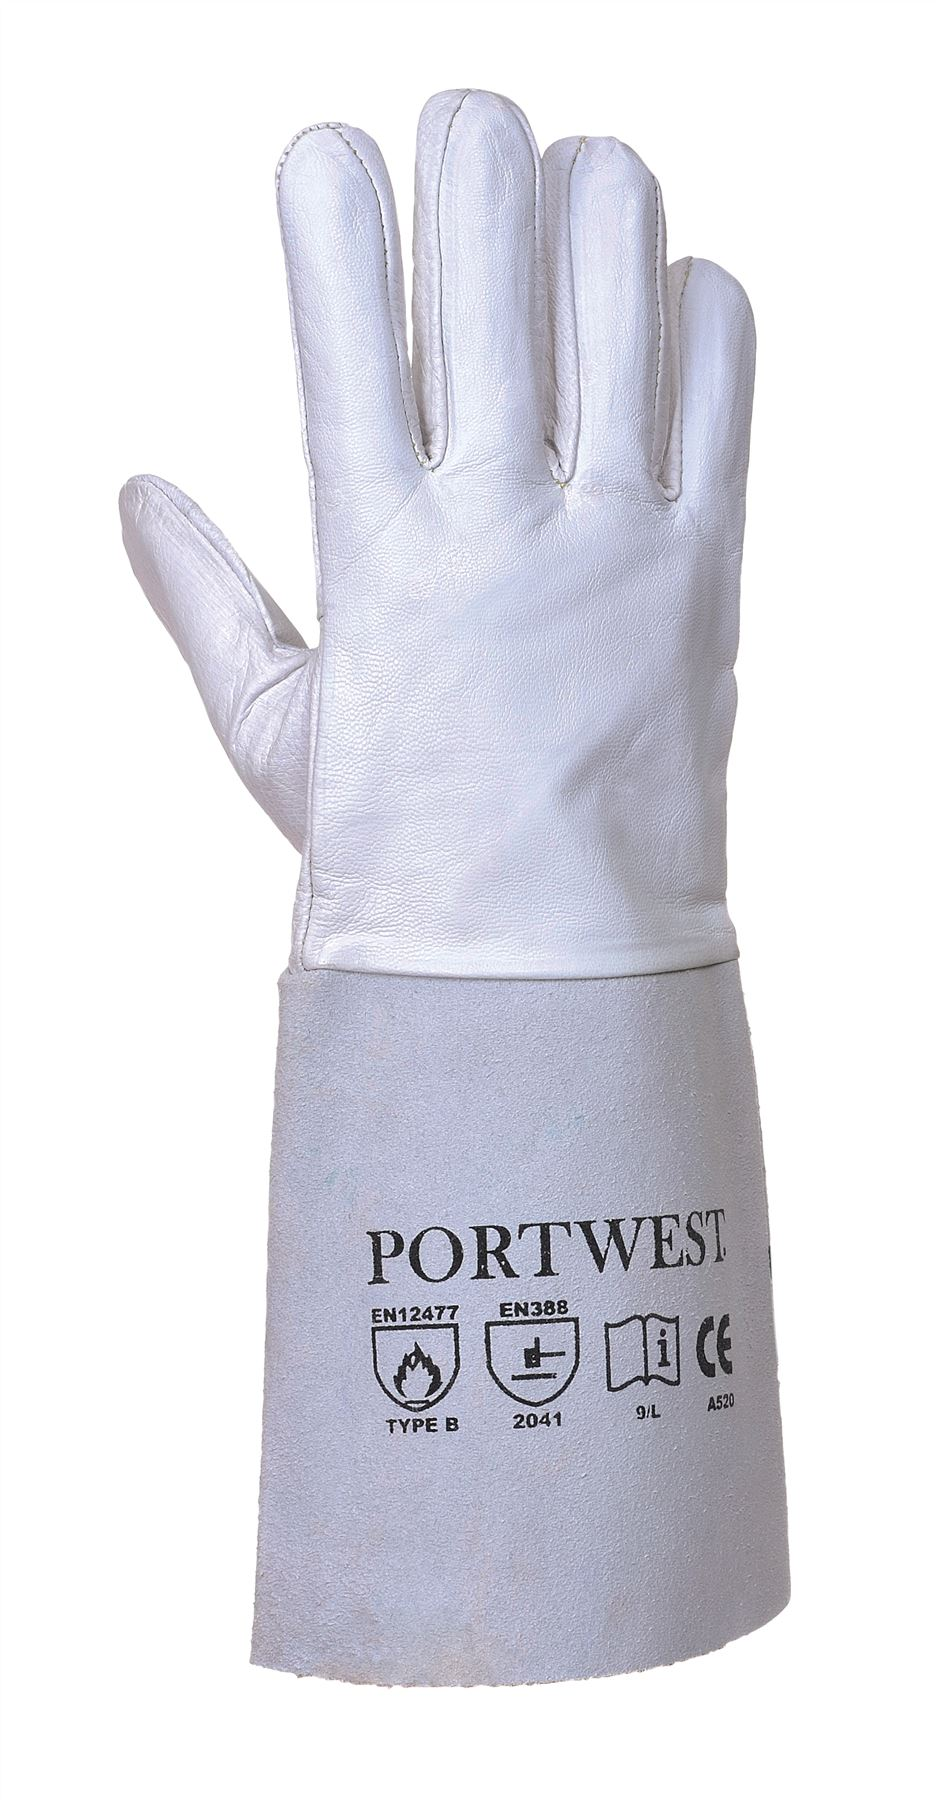 Leather work gloves for welding - Portwest Leather Tig Welders Gauntlet Work Gloves Welding